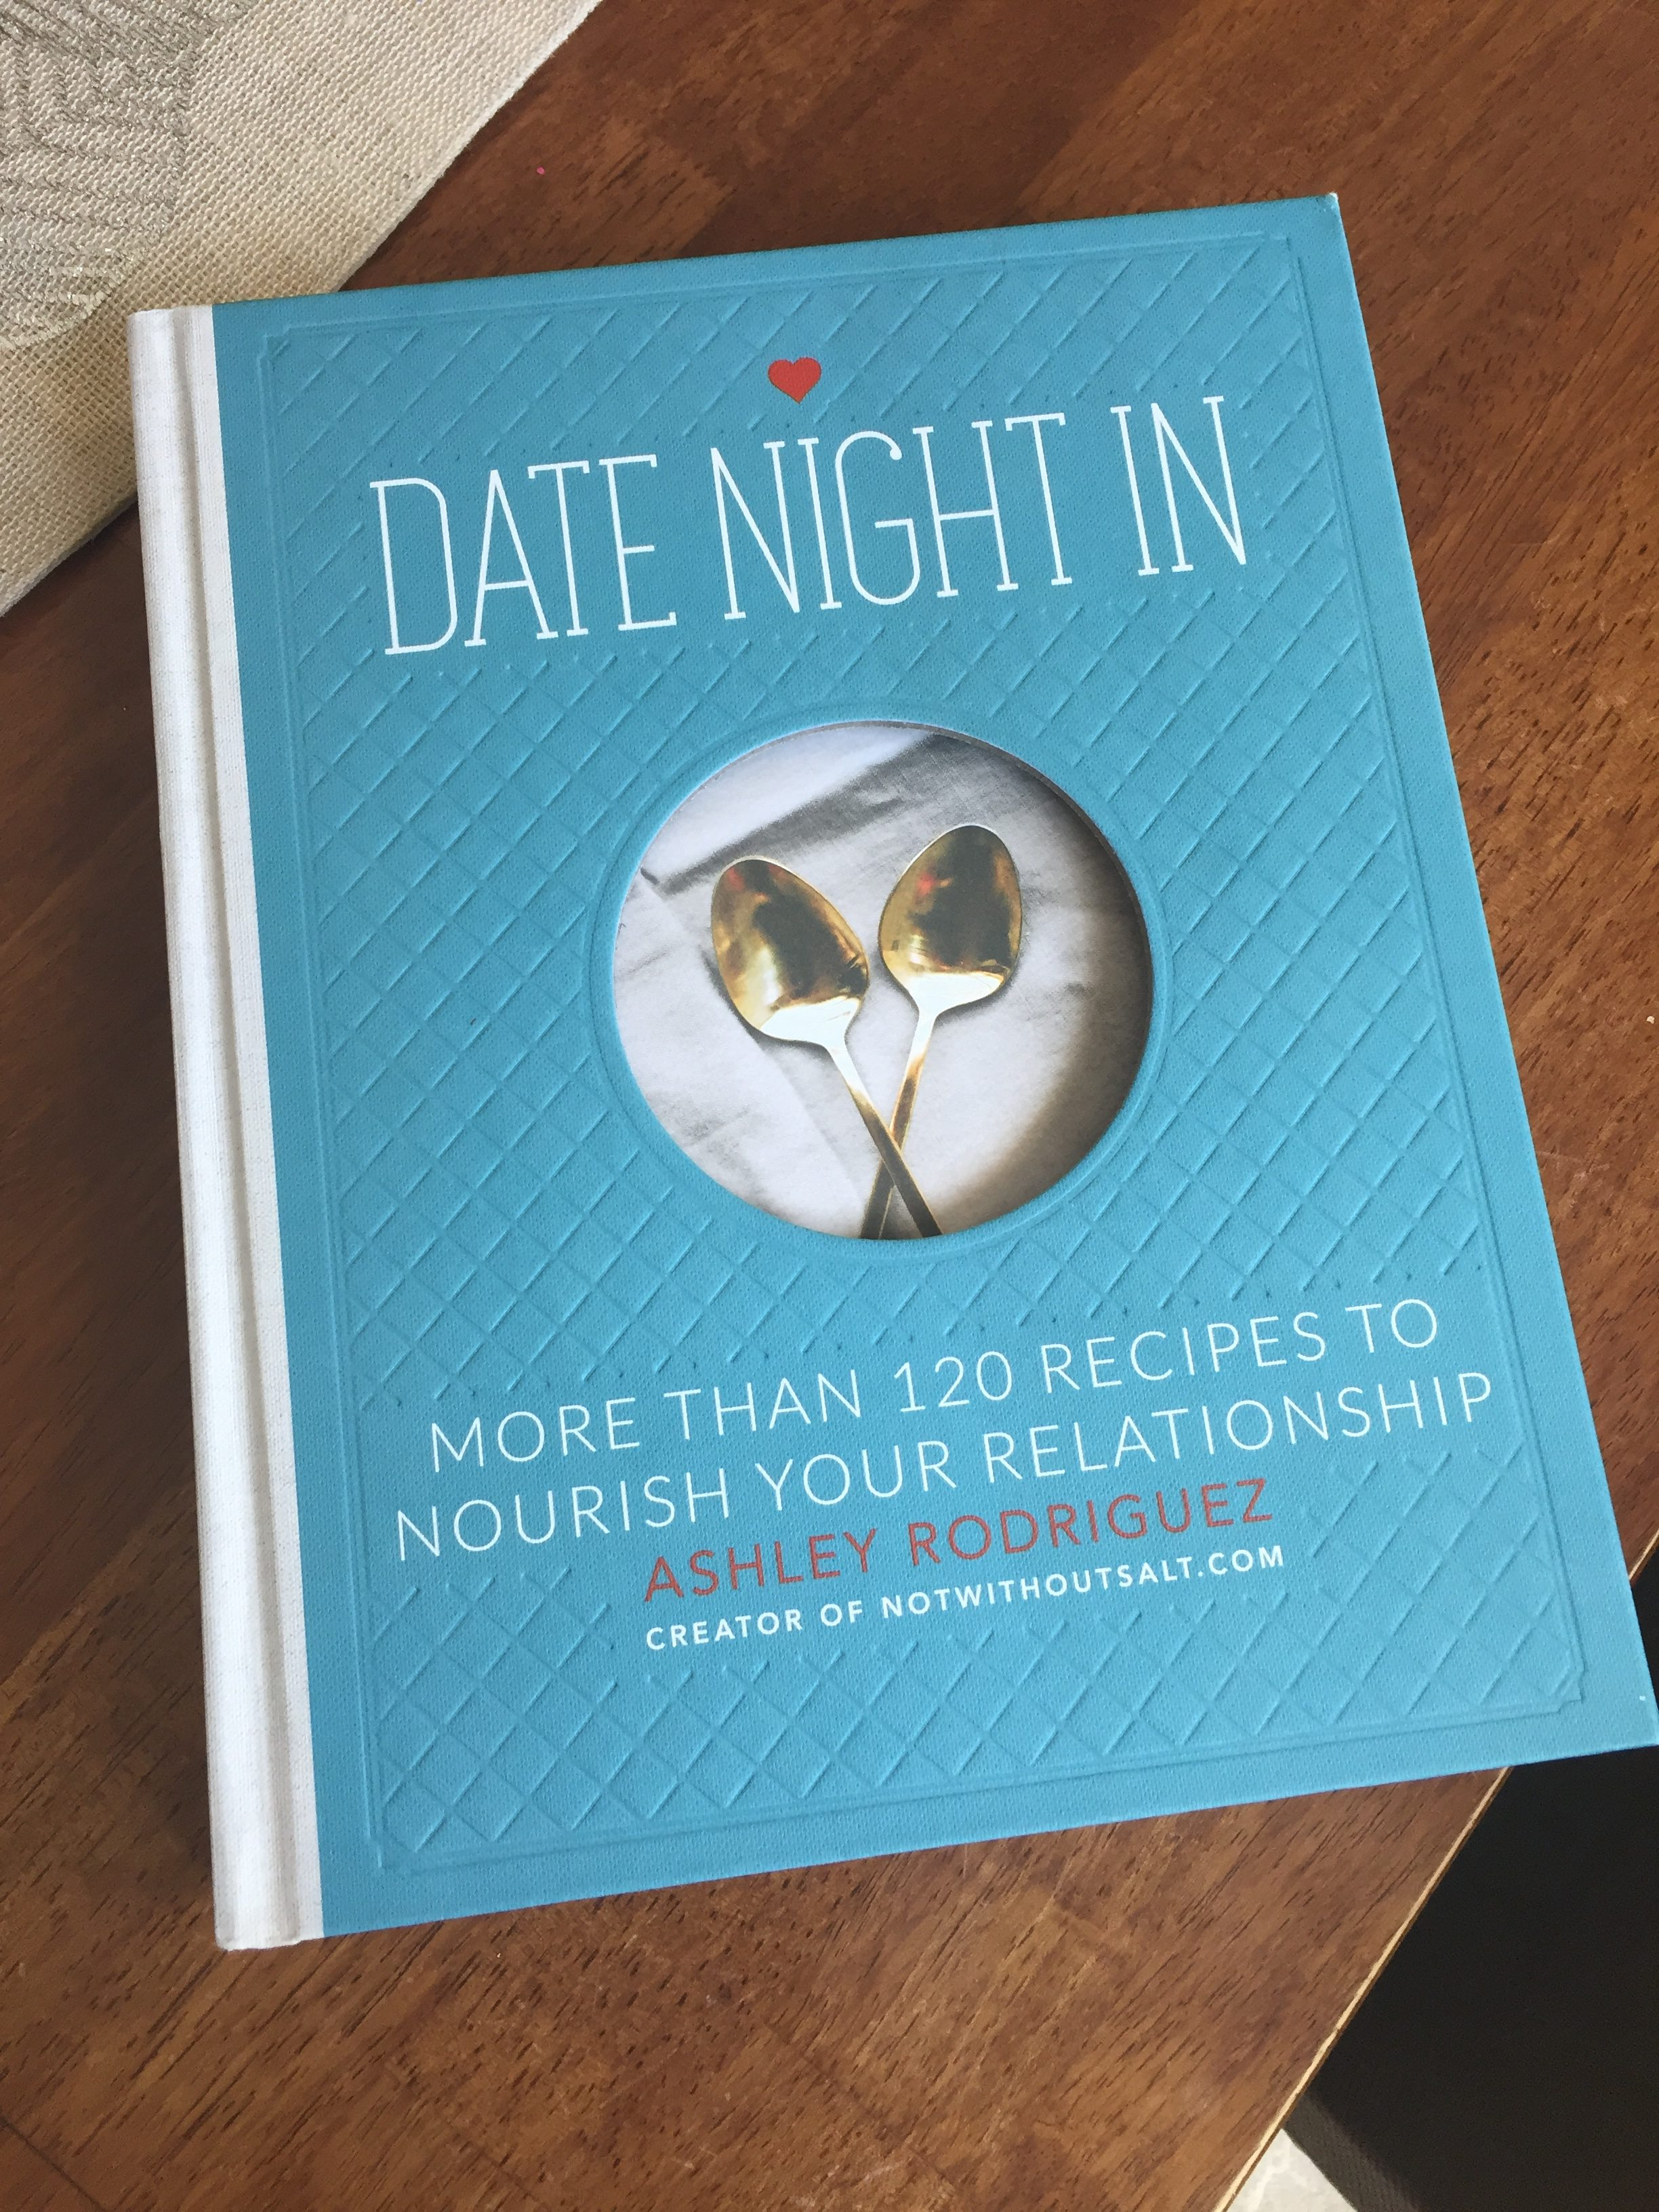 date, night, food, cooking, connecting, delicious, relationships, recipes